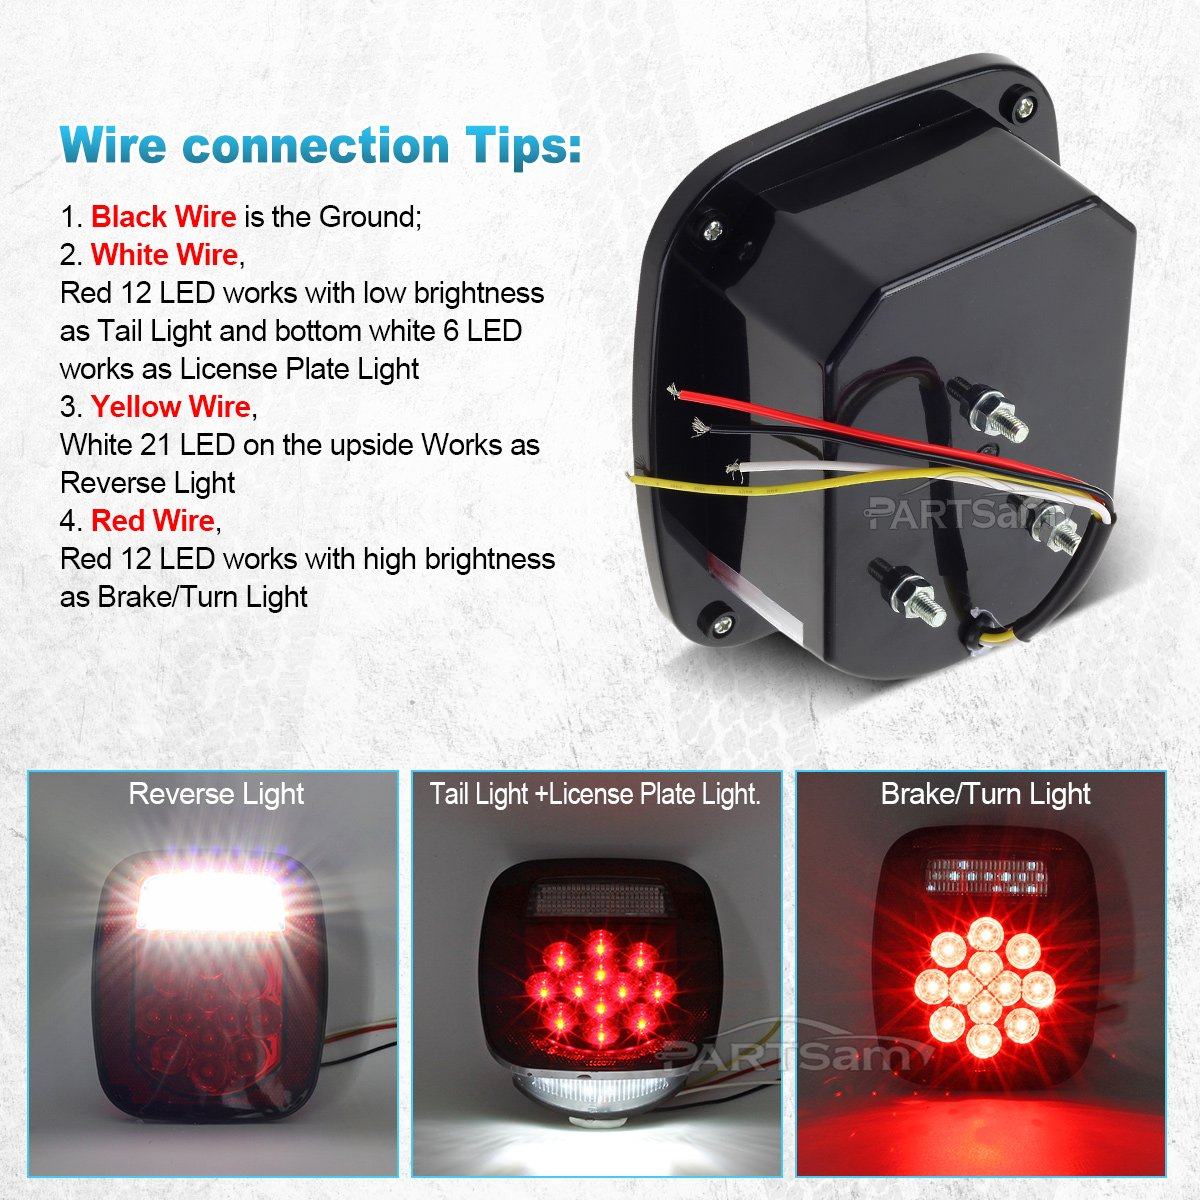 Partsam Combo Led Red Stop Turn Tail Light White Wiring A Fixture With Black And Wires Backup License Lamp For Truck Jeep Ford Automotive